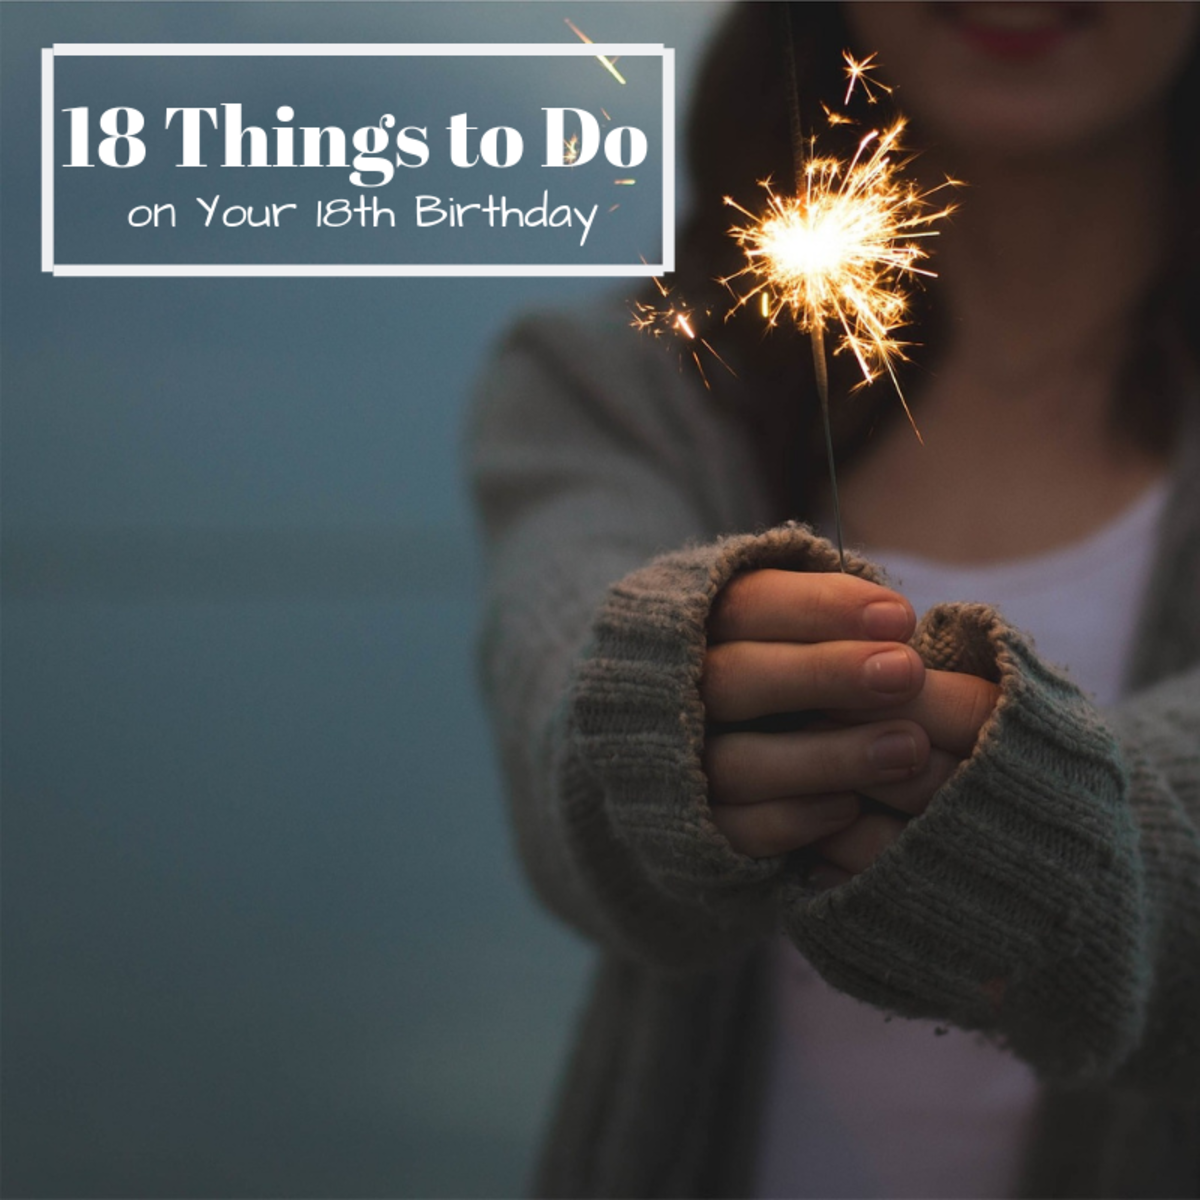 Now that you've finally turned 18, it's time to take advantage of some of the things you couldn't do as a kid. . . safely of course.